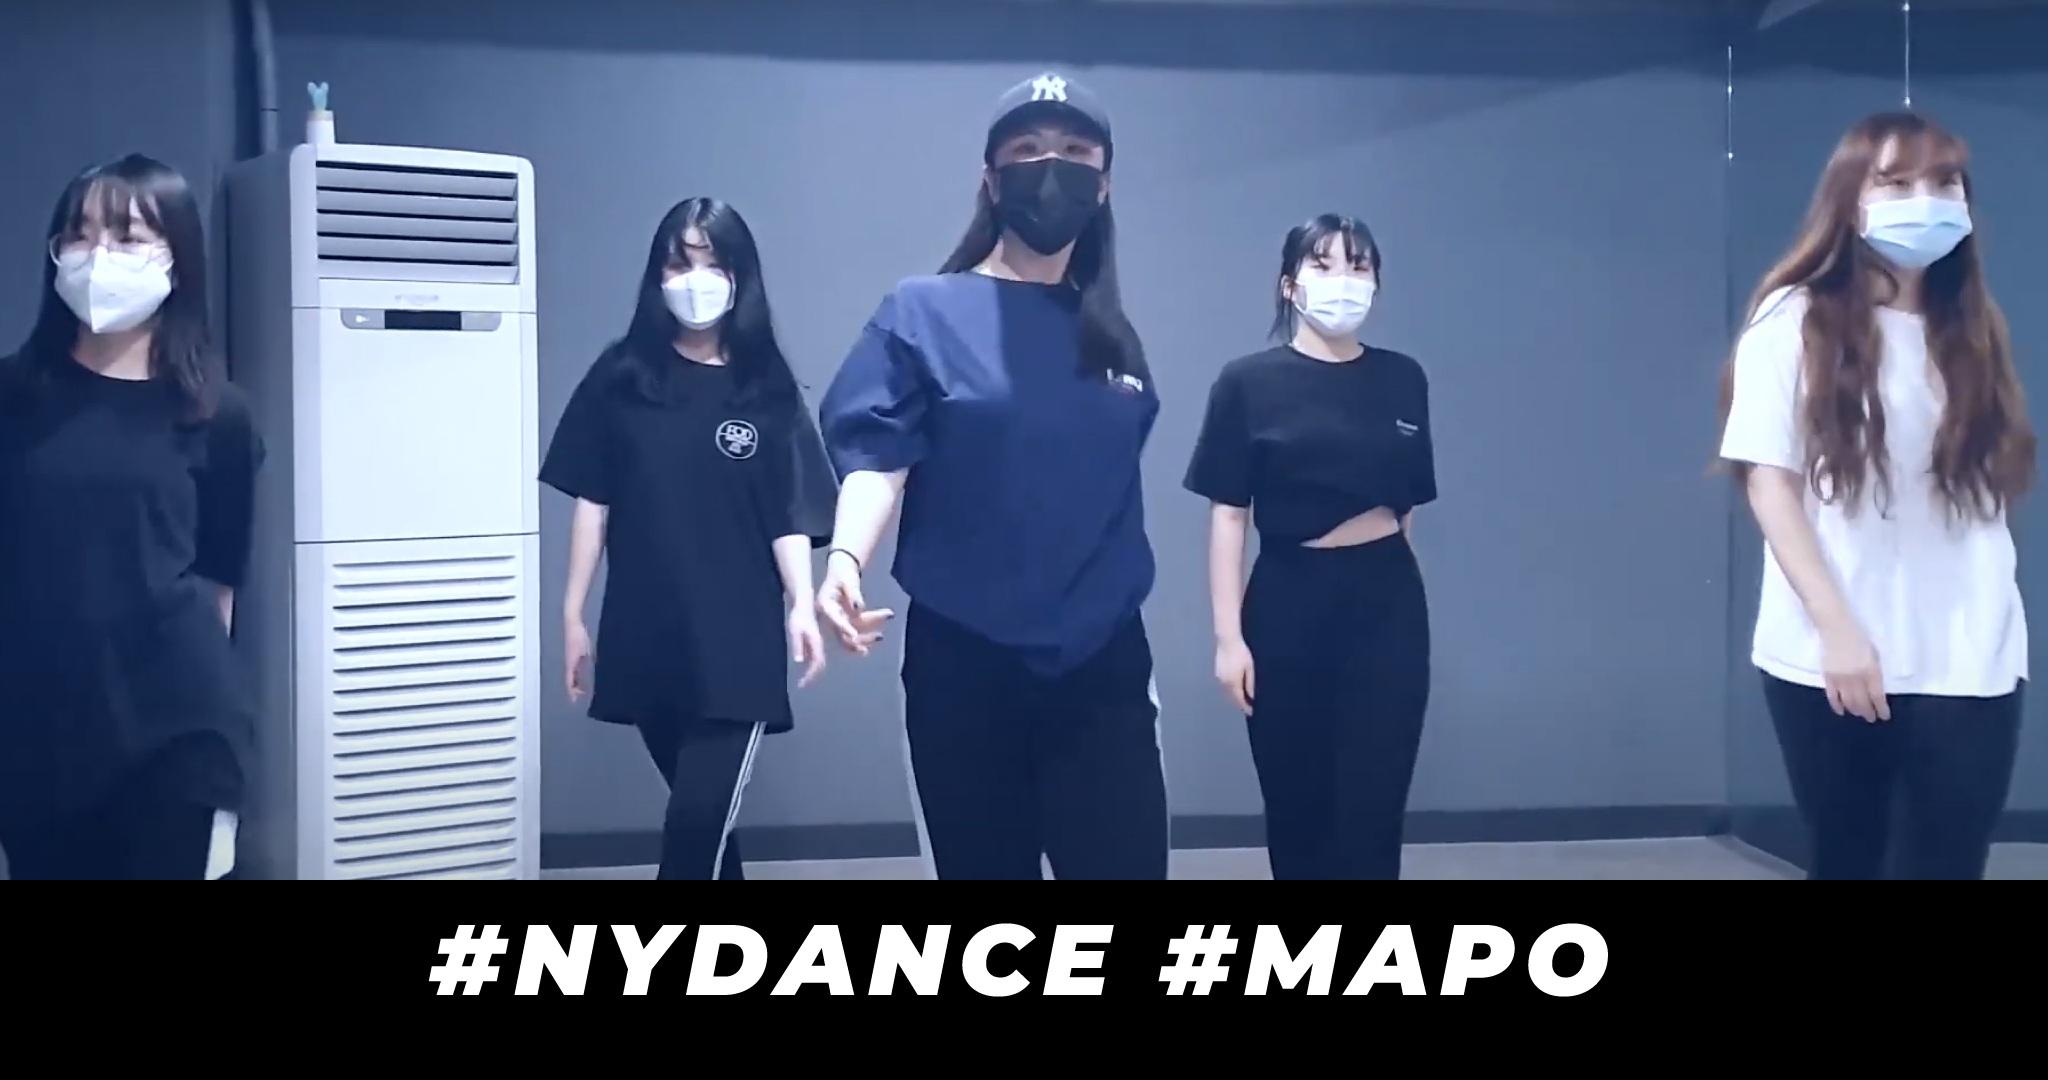 NYDANCE MAPO – GIRL'S HIPHOP CLASS